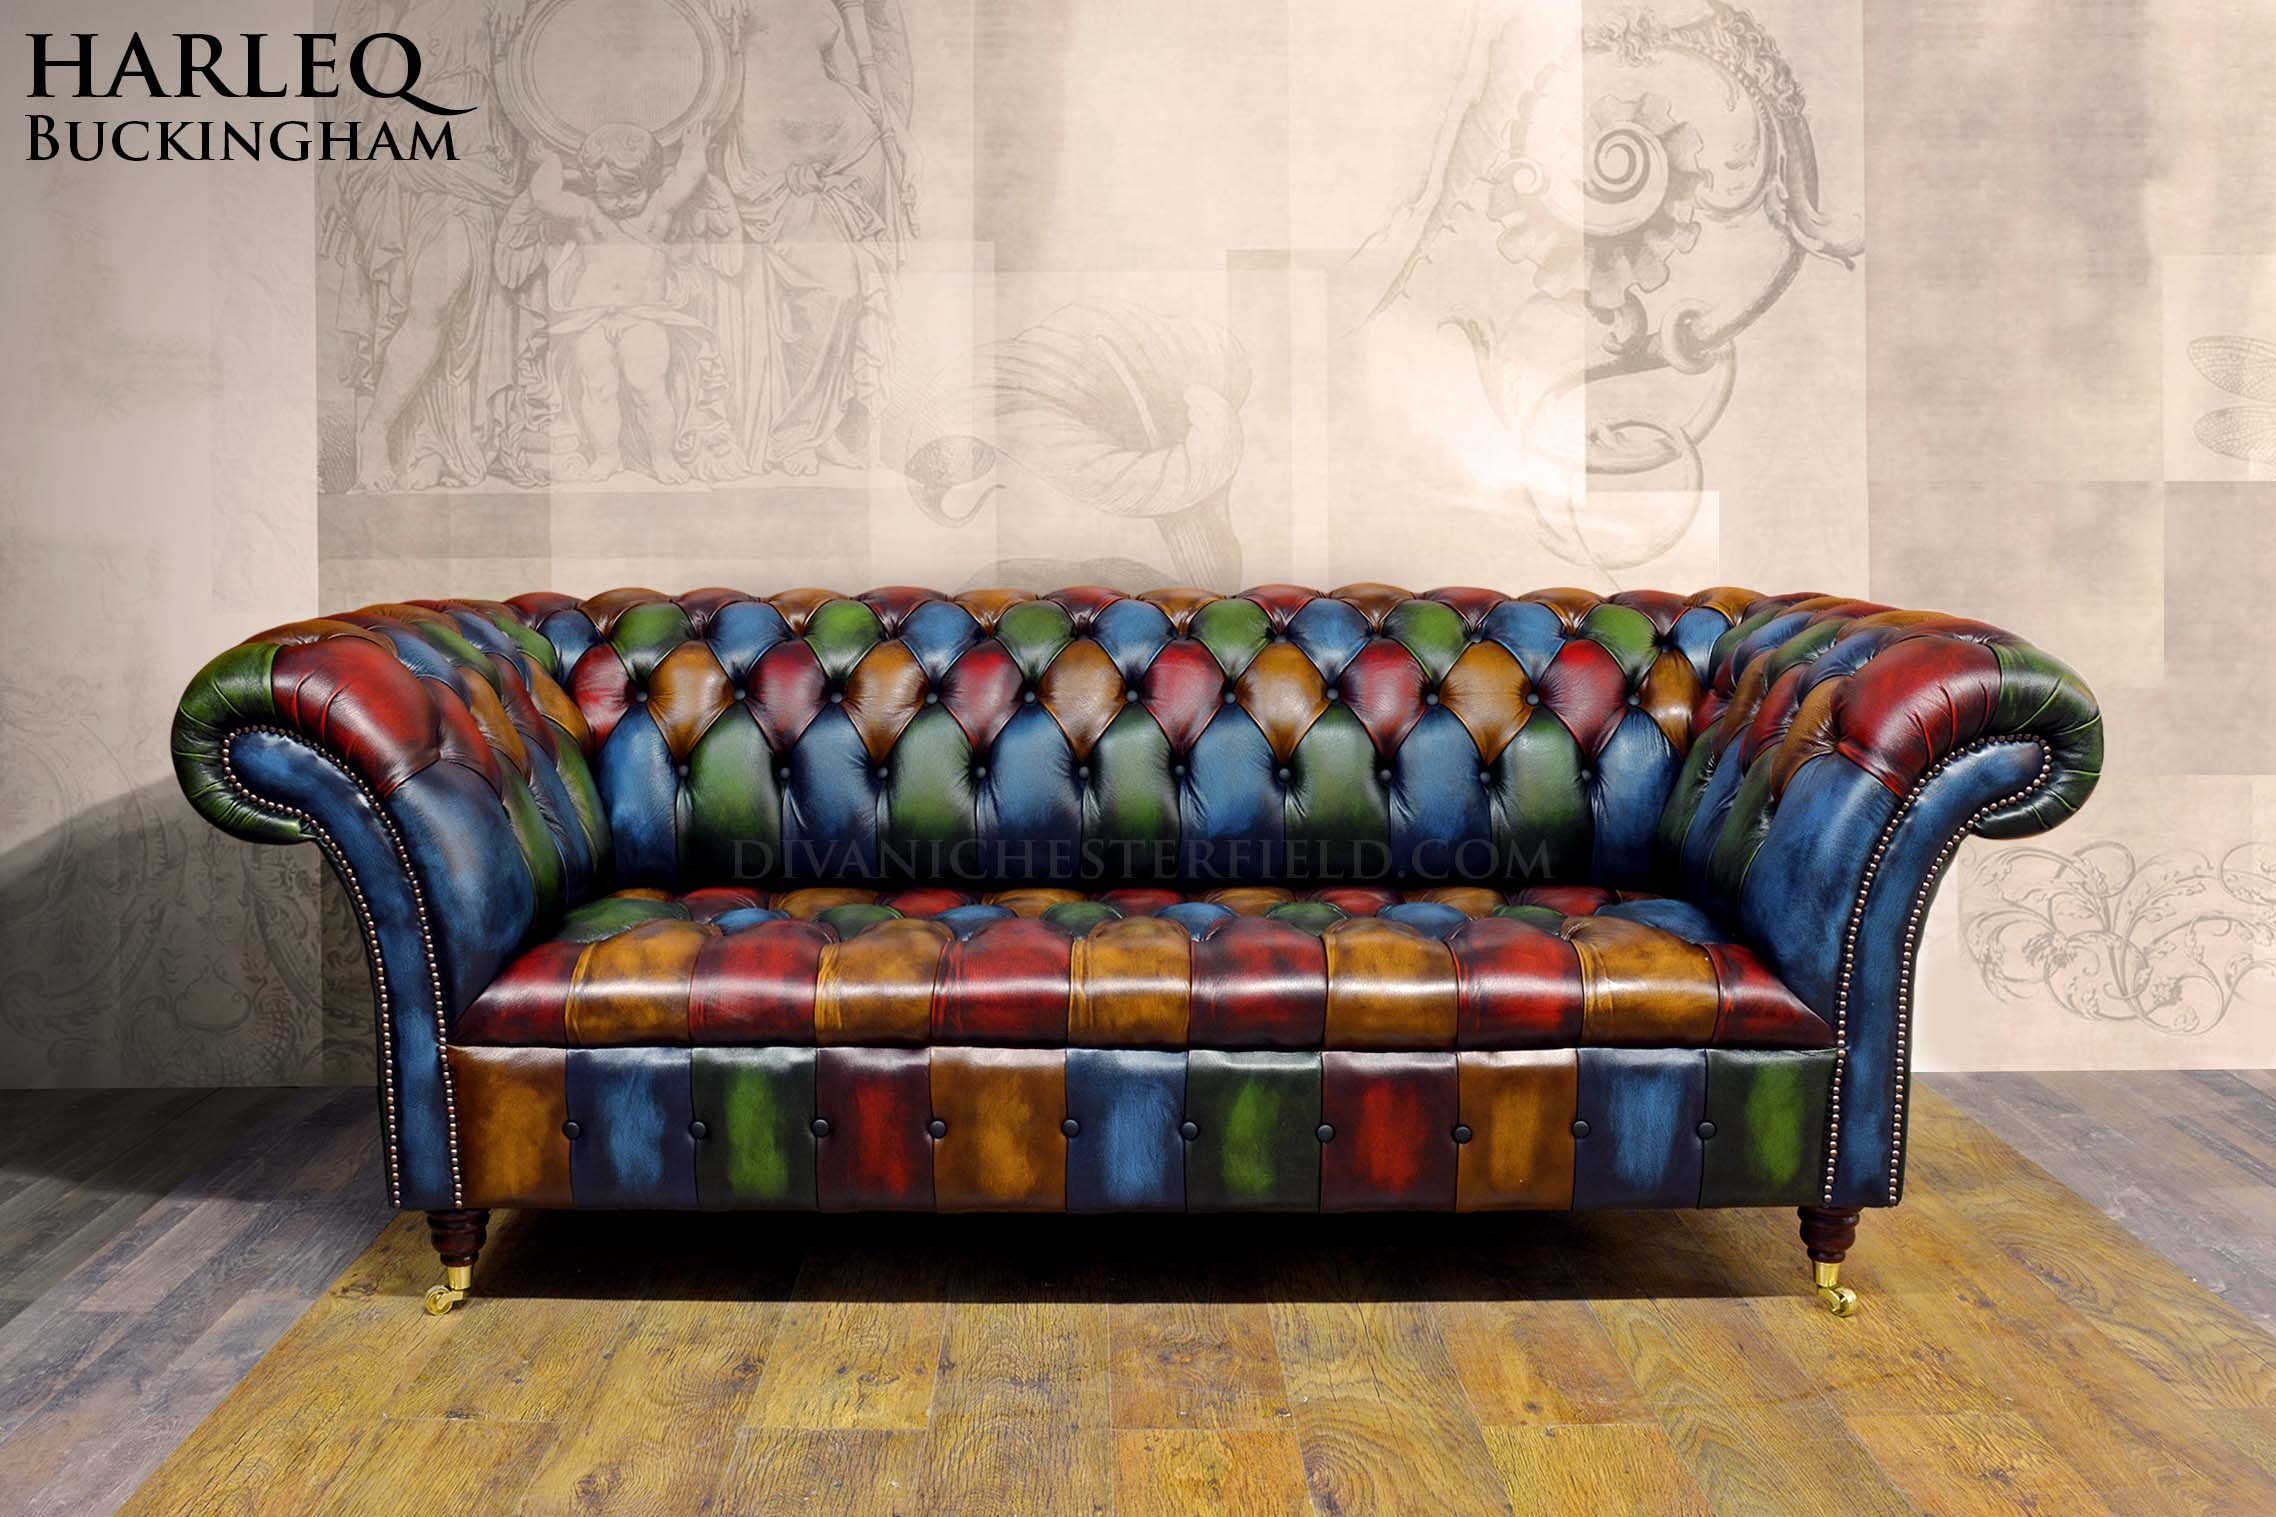 Canapé Chesterfield Patchwork Chesterfield Patchwork Sofa Ghost Walton Patchwork Chesterfield